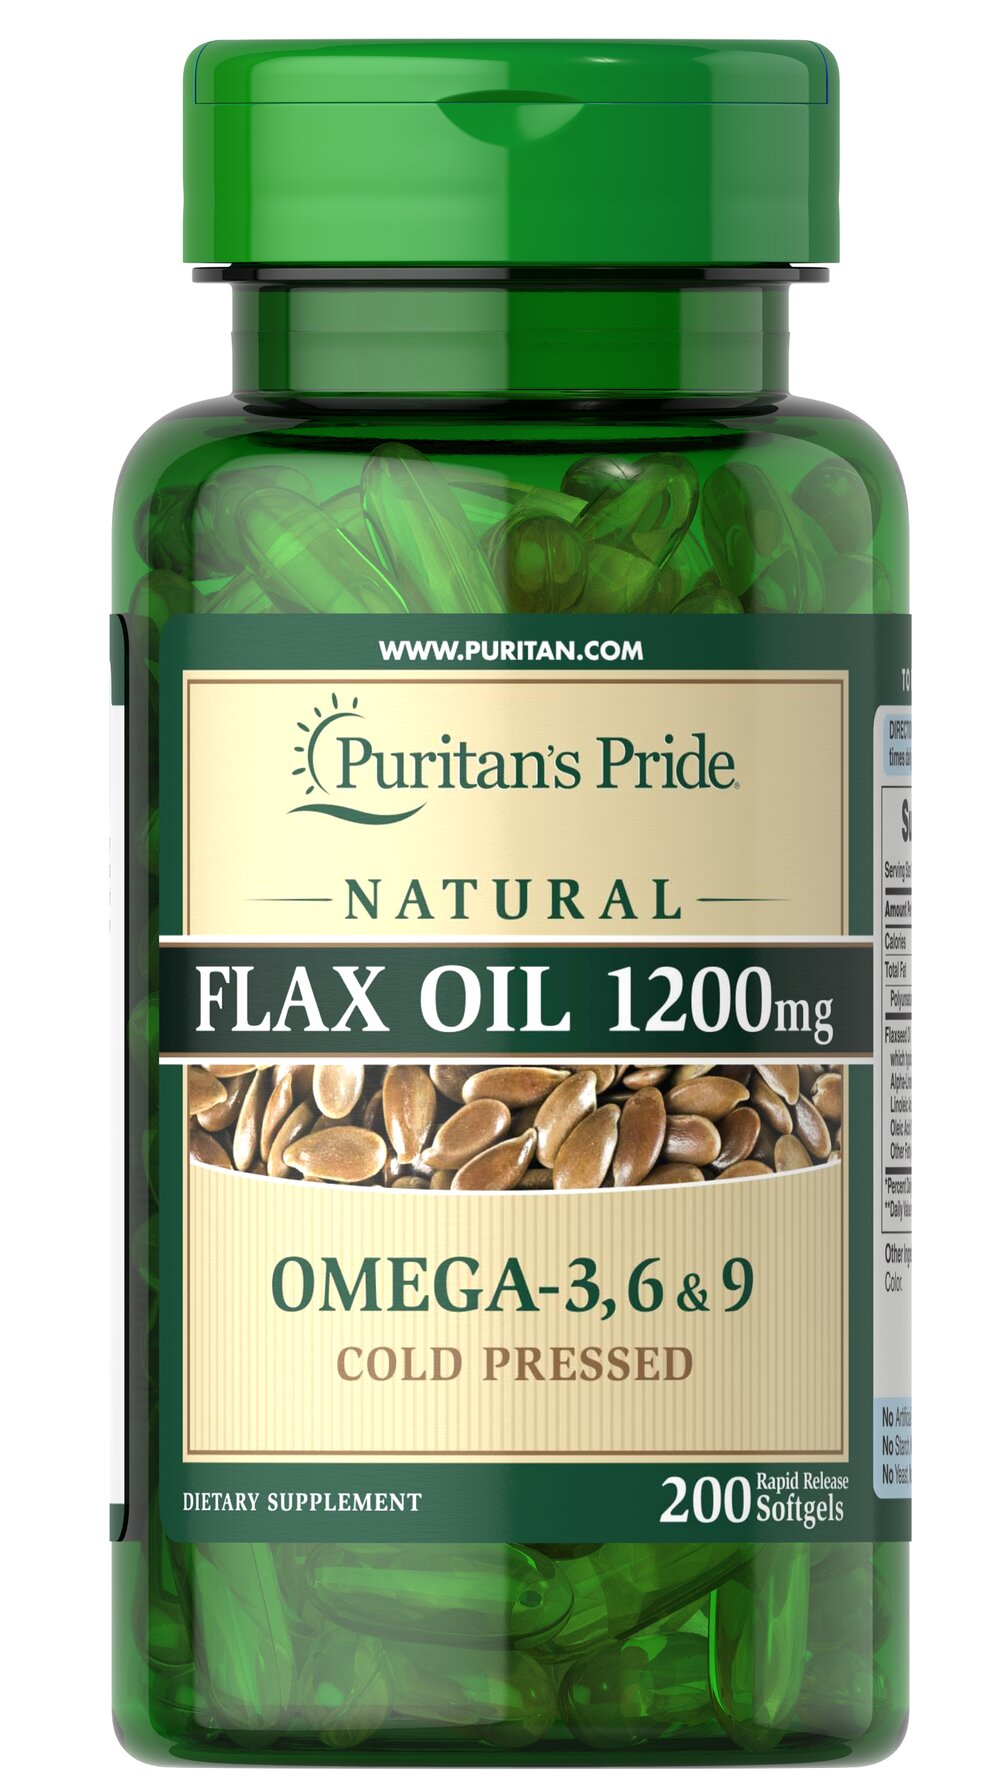 Natural Flax Oil 1200 mg  200 Softgels 1200 mg $22.99